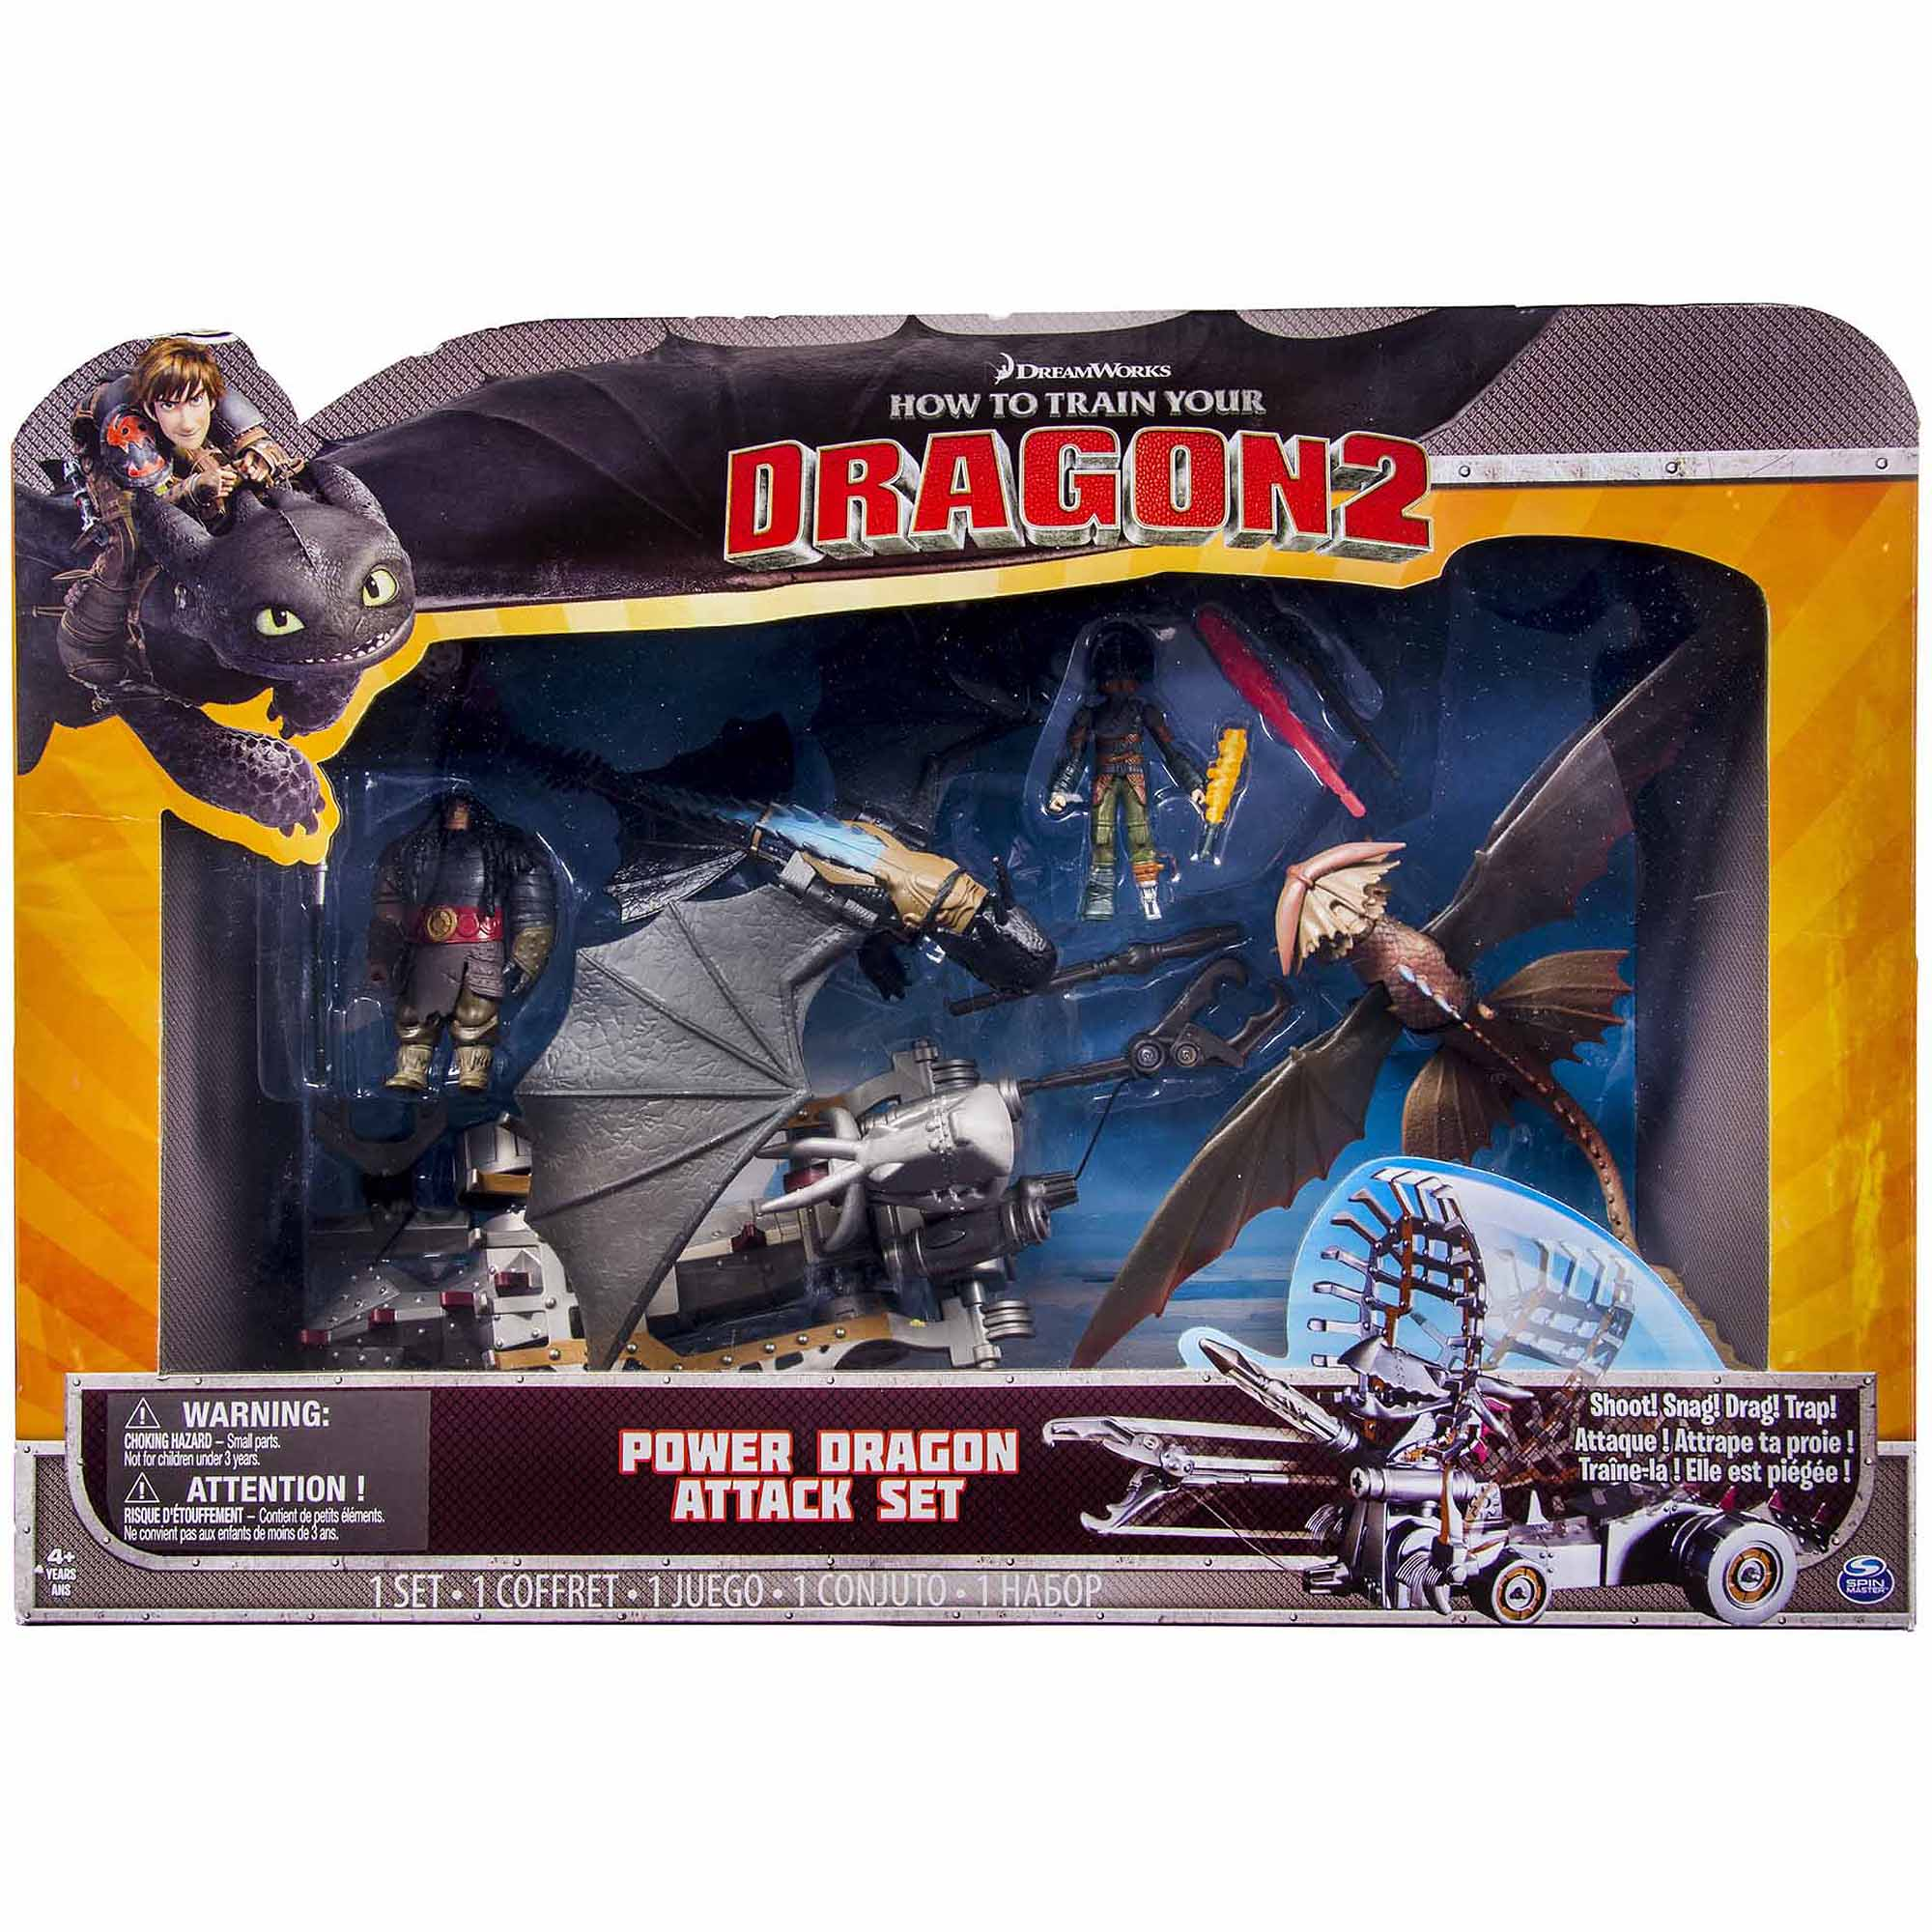 DreamWorks Dragons How To Train Your Dragon 2 Power Dragon Attack